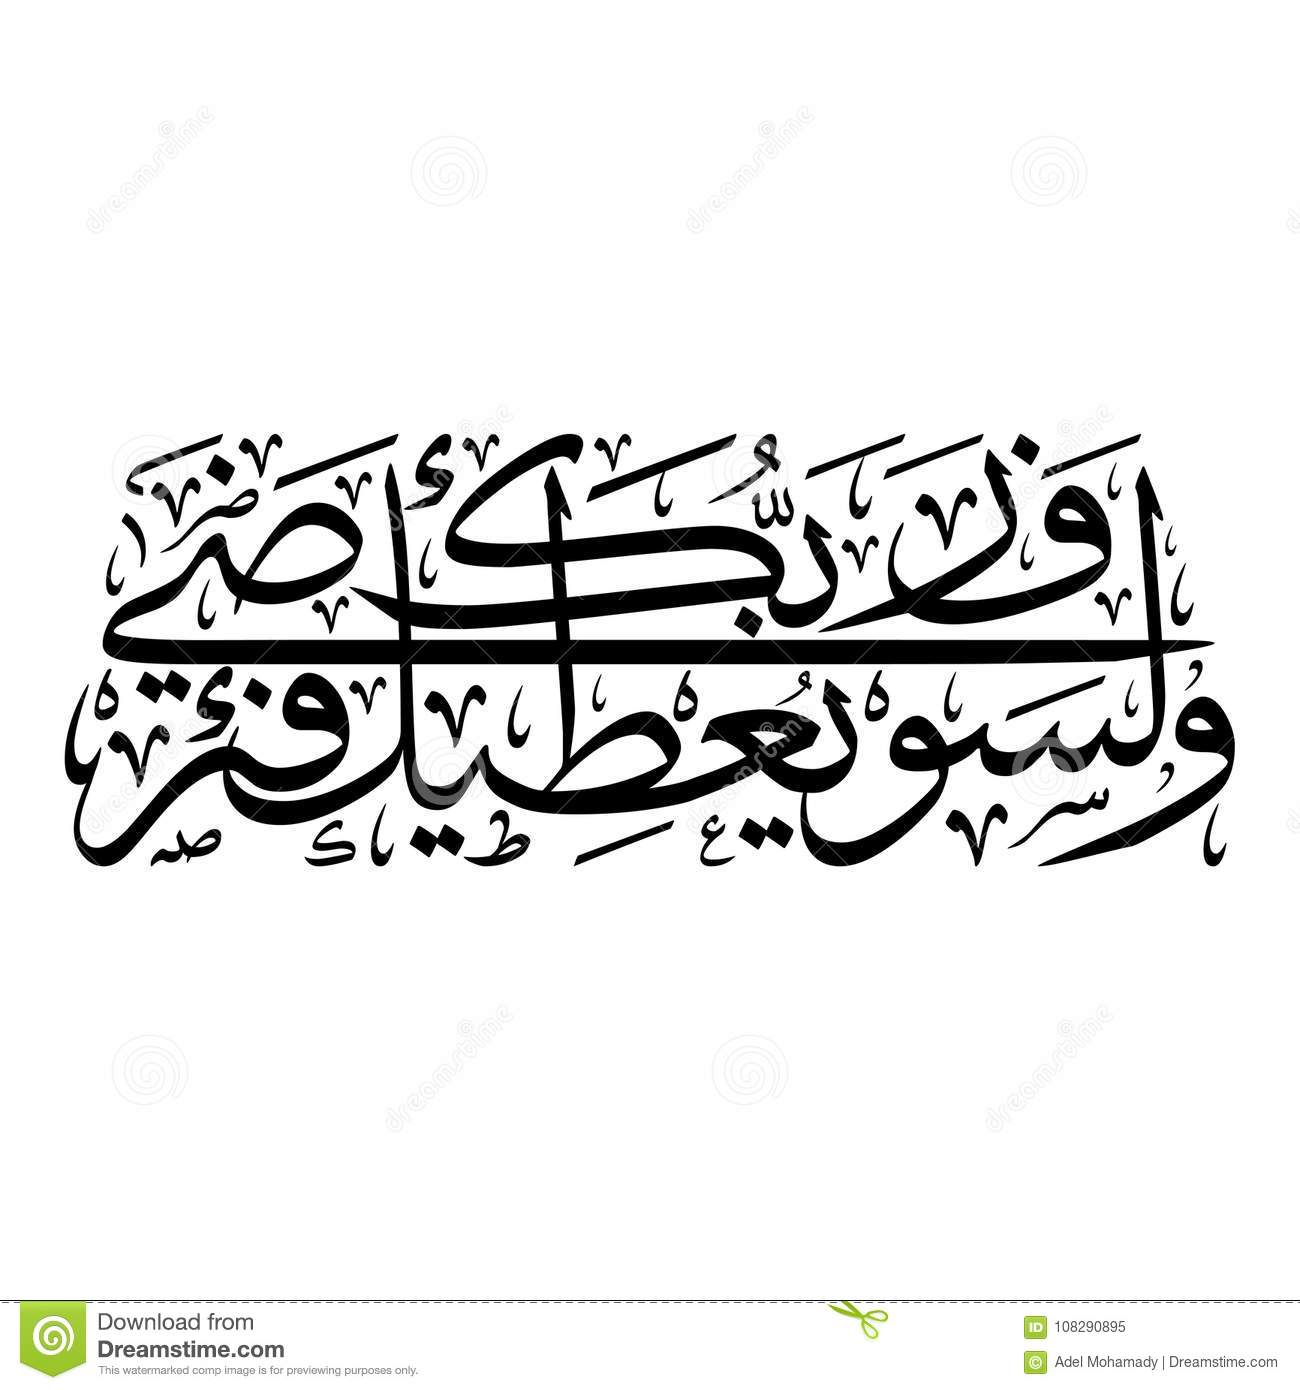 Arabic Calligraphy Creative Vector of Verse 5 from Chapter `Al-Dhuhaa` of the Quraan